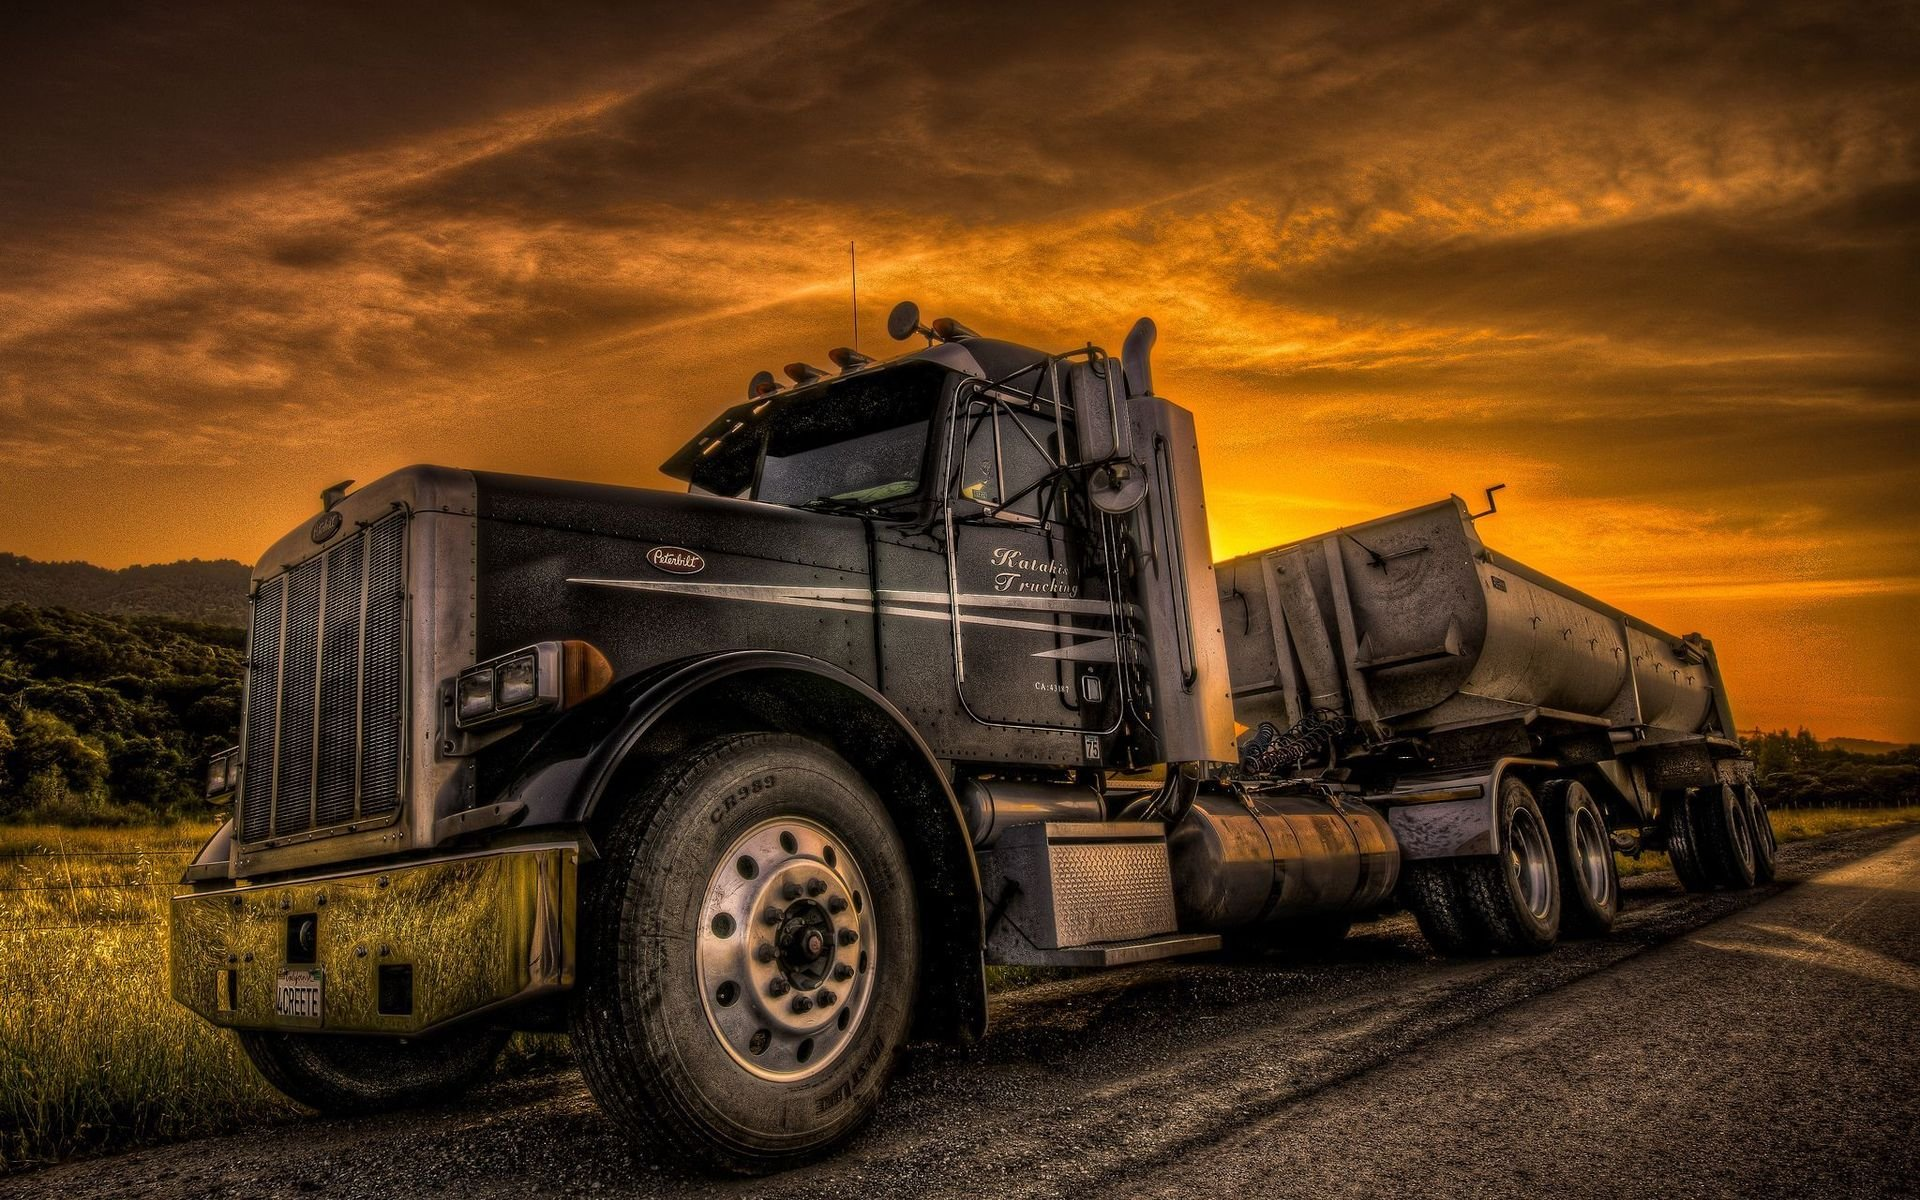 Hd Wallpapers Cool Trucks With Girls 1600 X 1000 301 Kb Jpeg HD 1920x1200